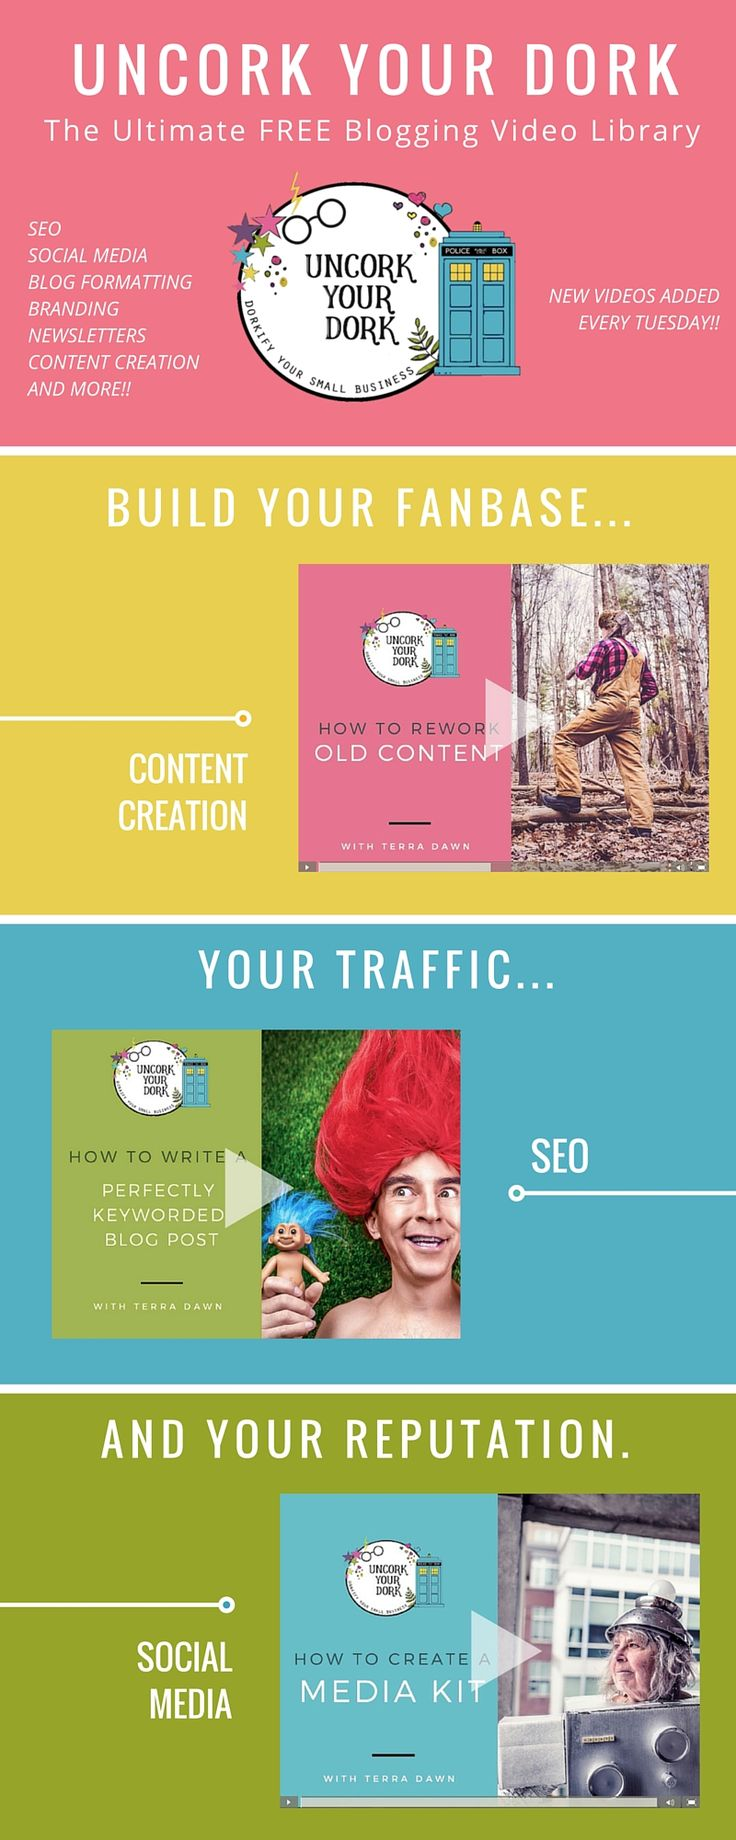 Check out this free traffic building video library for bloggers! Terra Dawn at Uncork Your Dork covers SEO, Content Creation, Traffic Building, Social Media, and more!